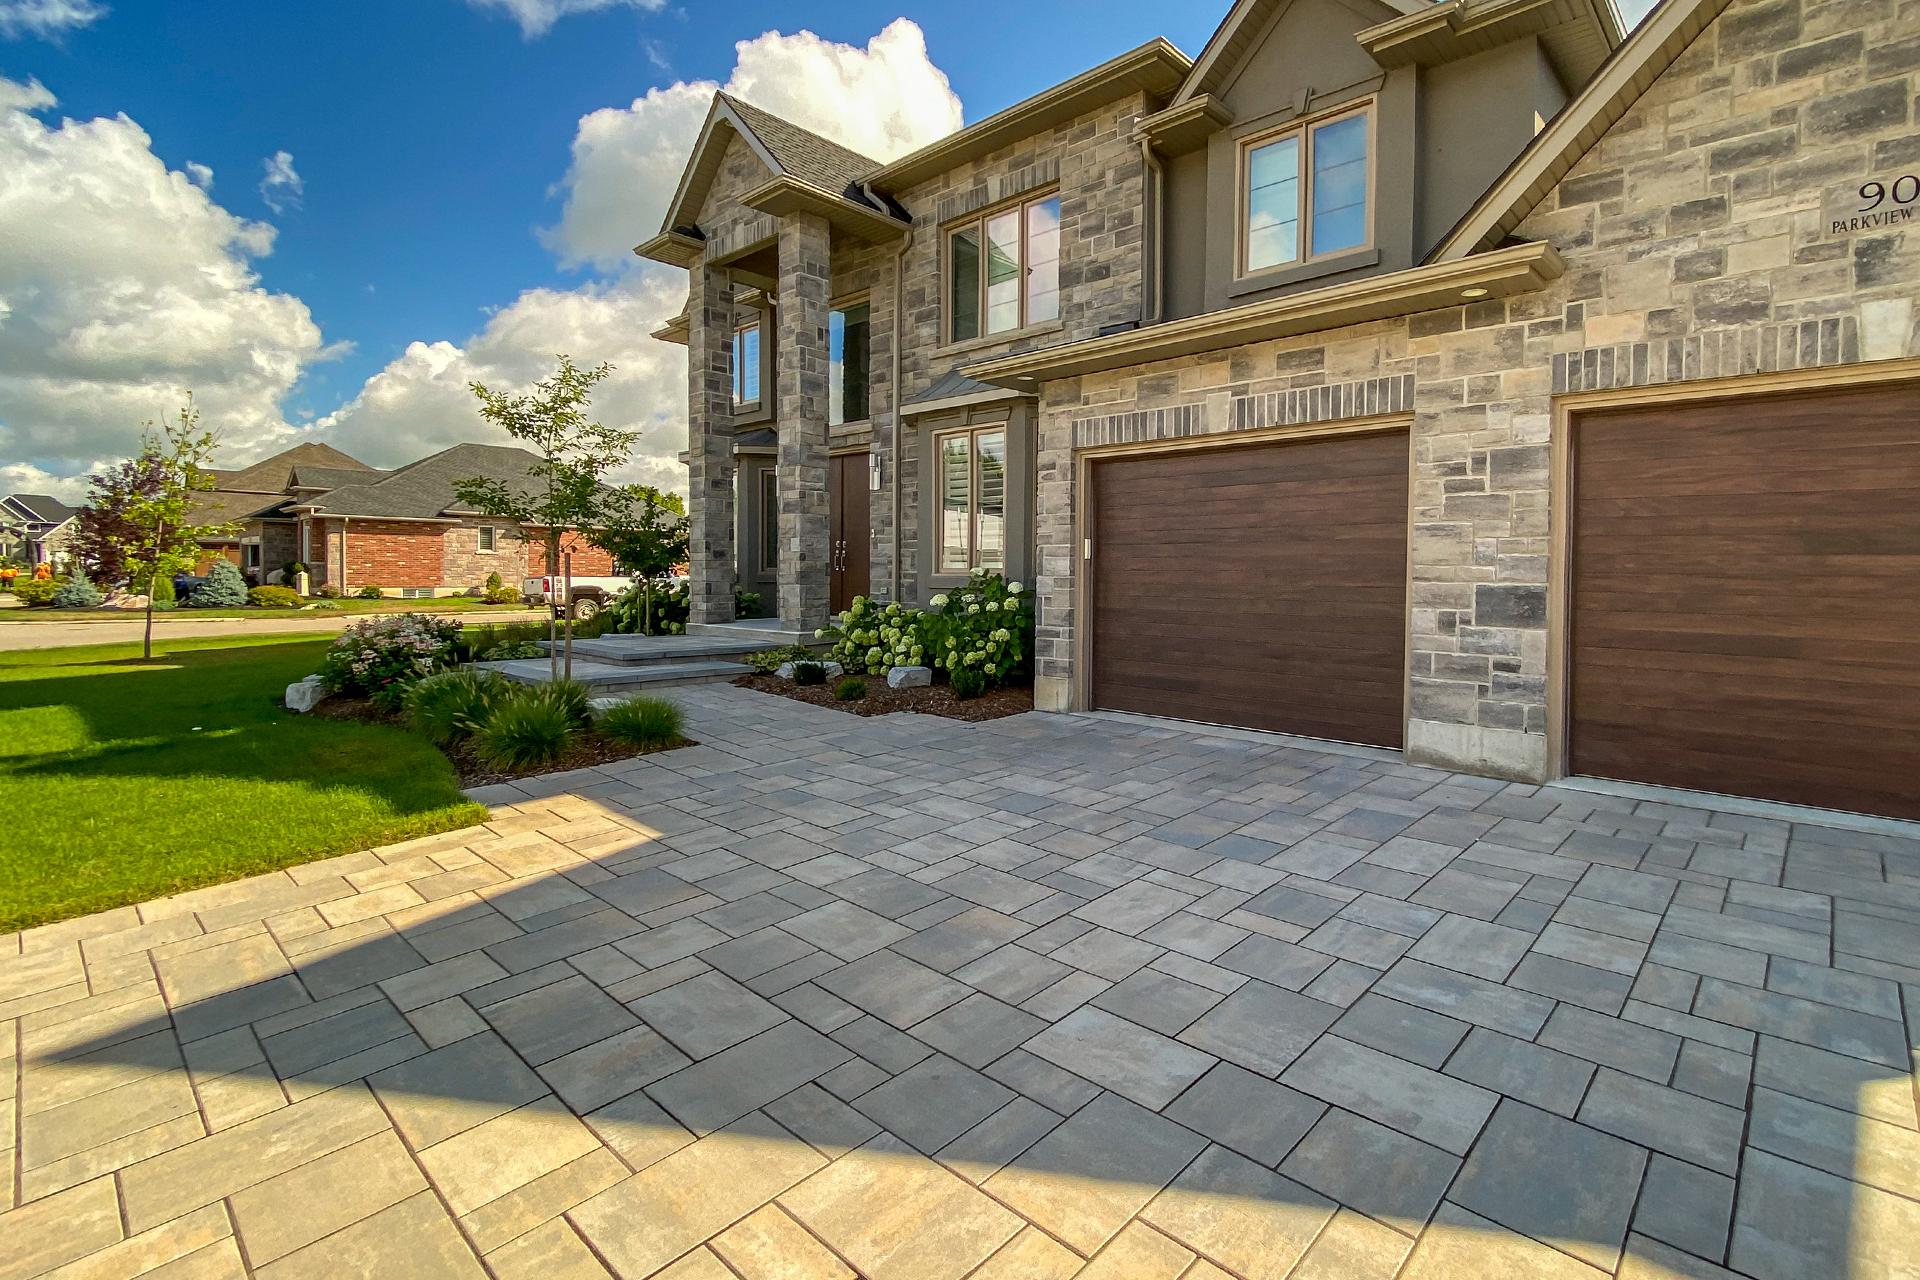 Image of front of house with well made driveway